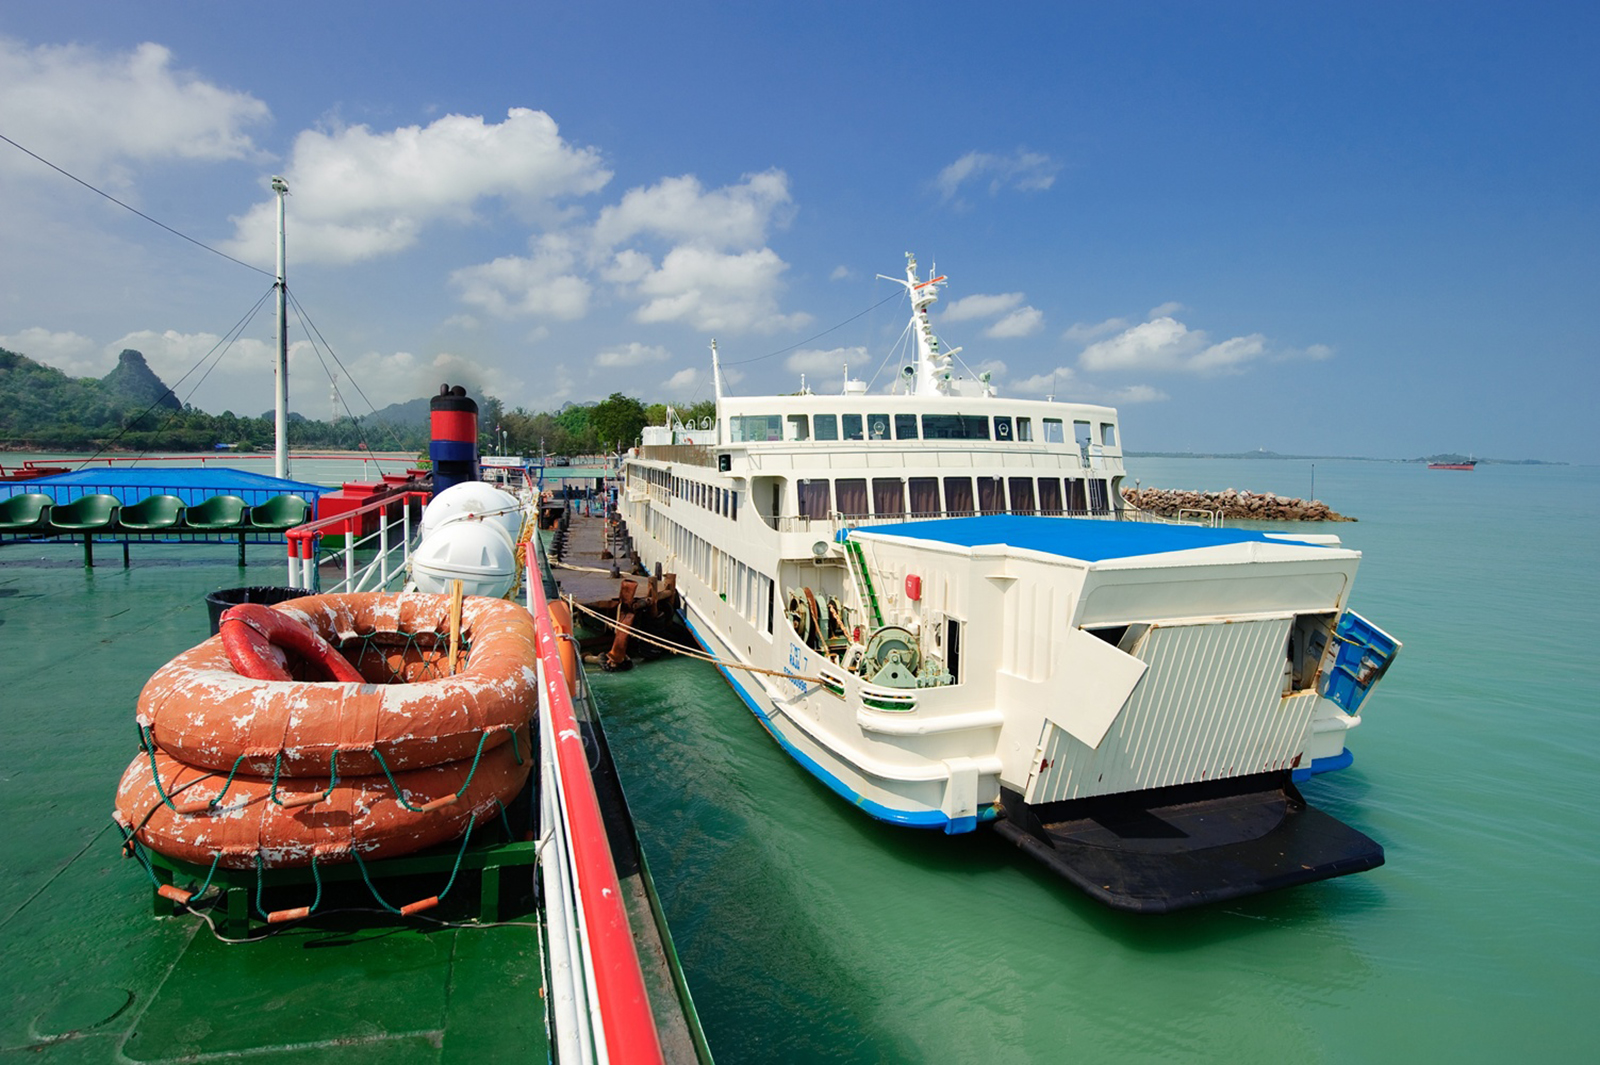 From Bangkok to Koh Phangan by VIP Coach and Big Ferry